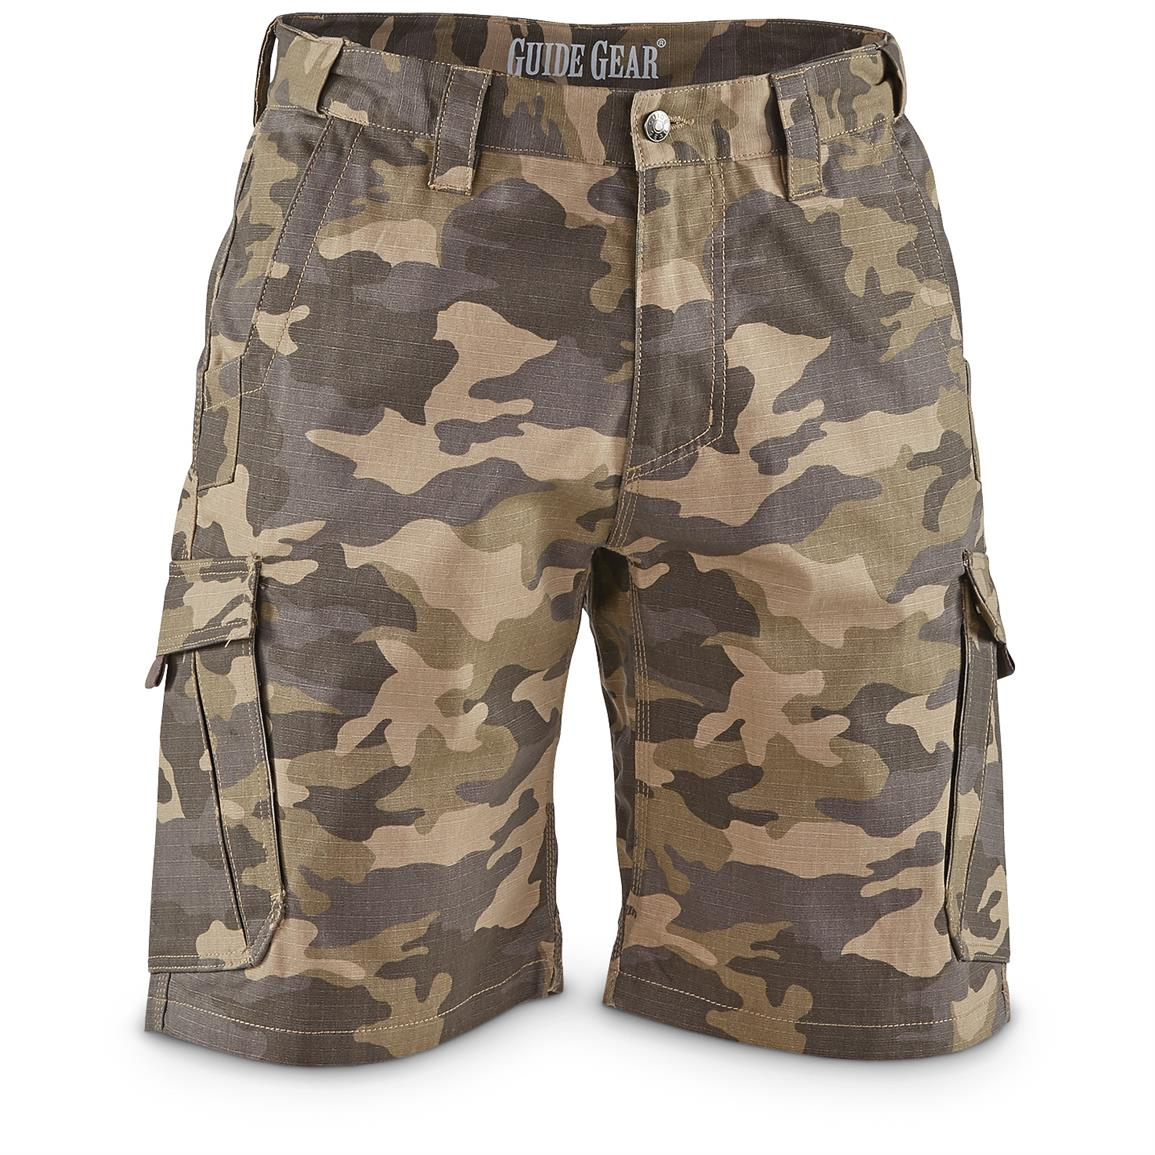 Guide Gear Men's Ripstop Cargo Shorts, Desert Camo